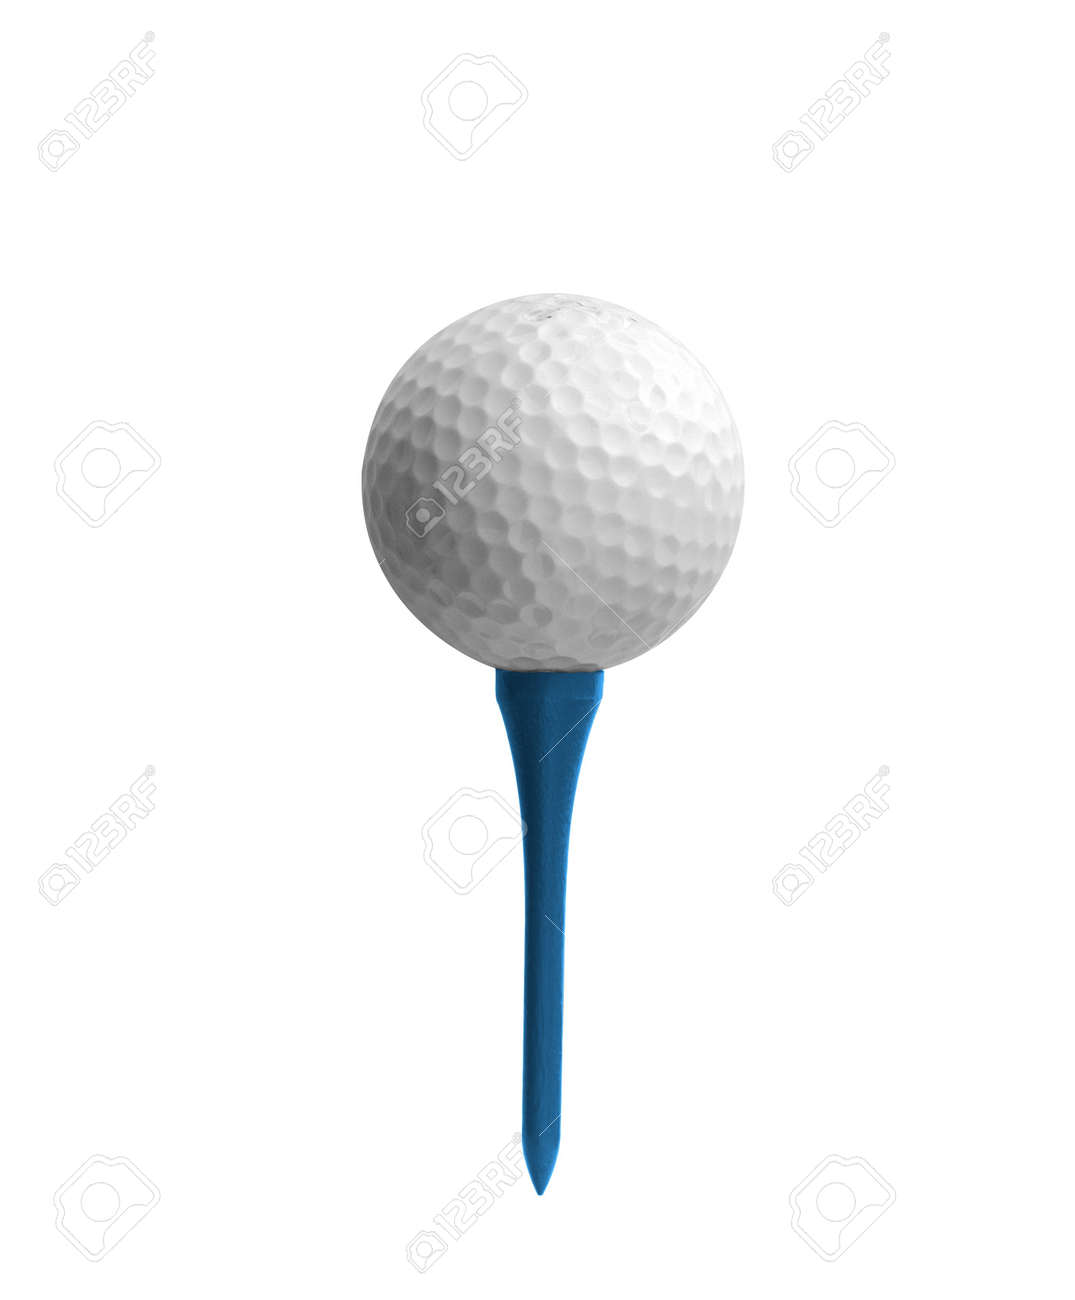 Golf ball on a tee isolated on white Stock Photo - 9327482